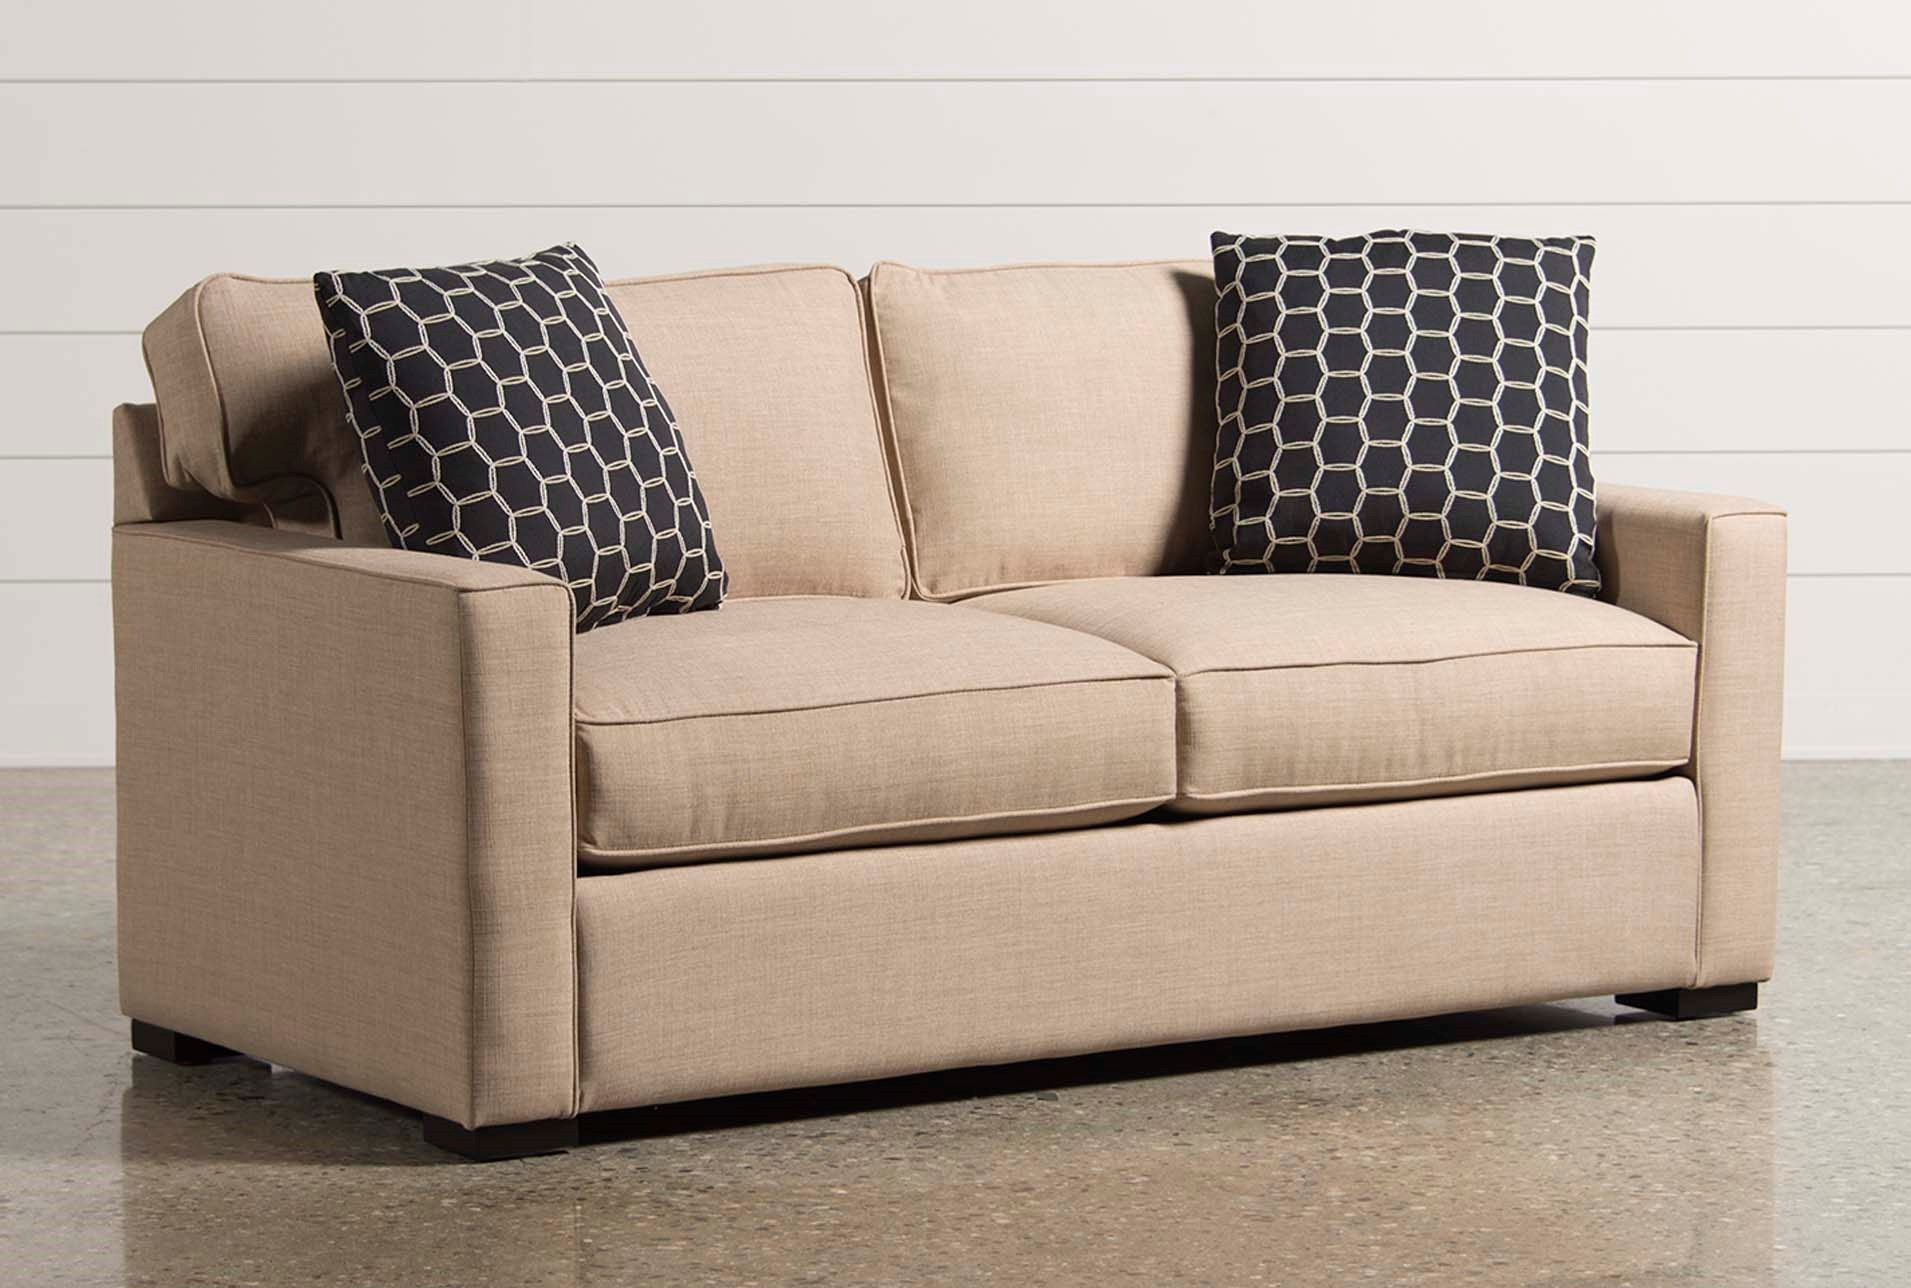 Silas Memory Foam Full Sleeper Foam Sofa Bed Loveseat